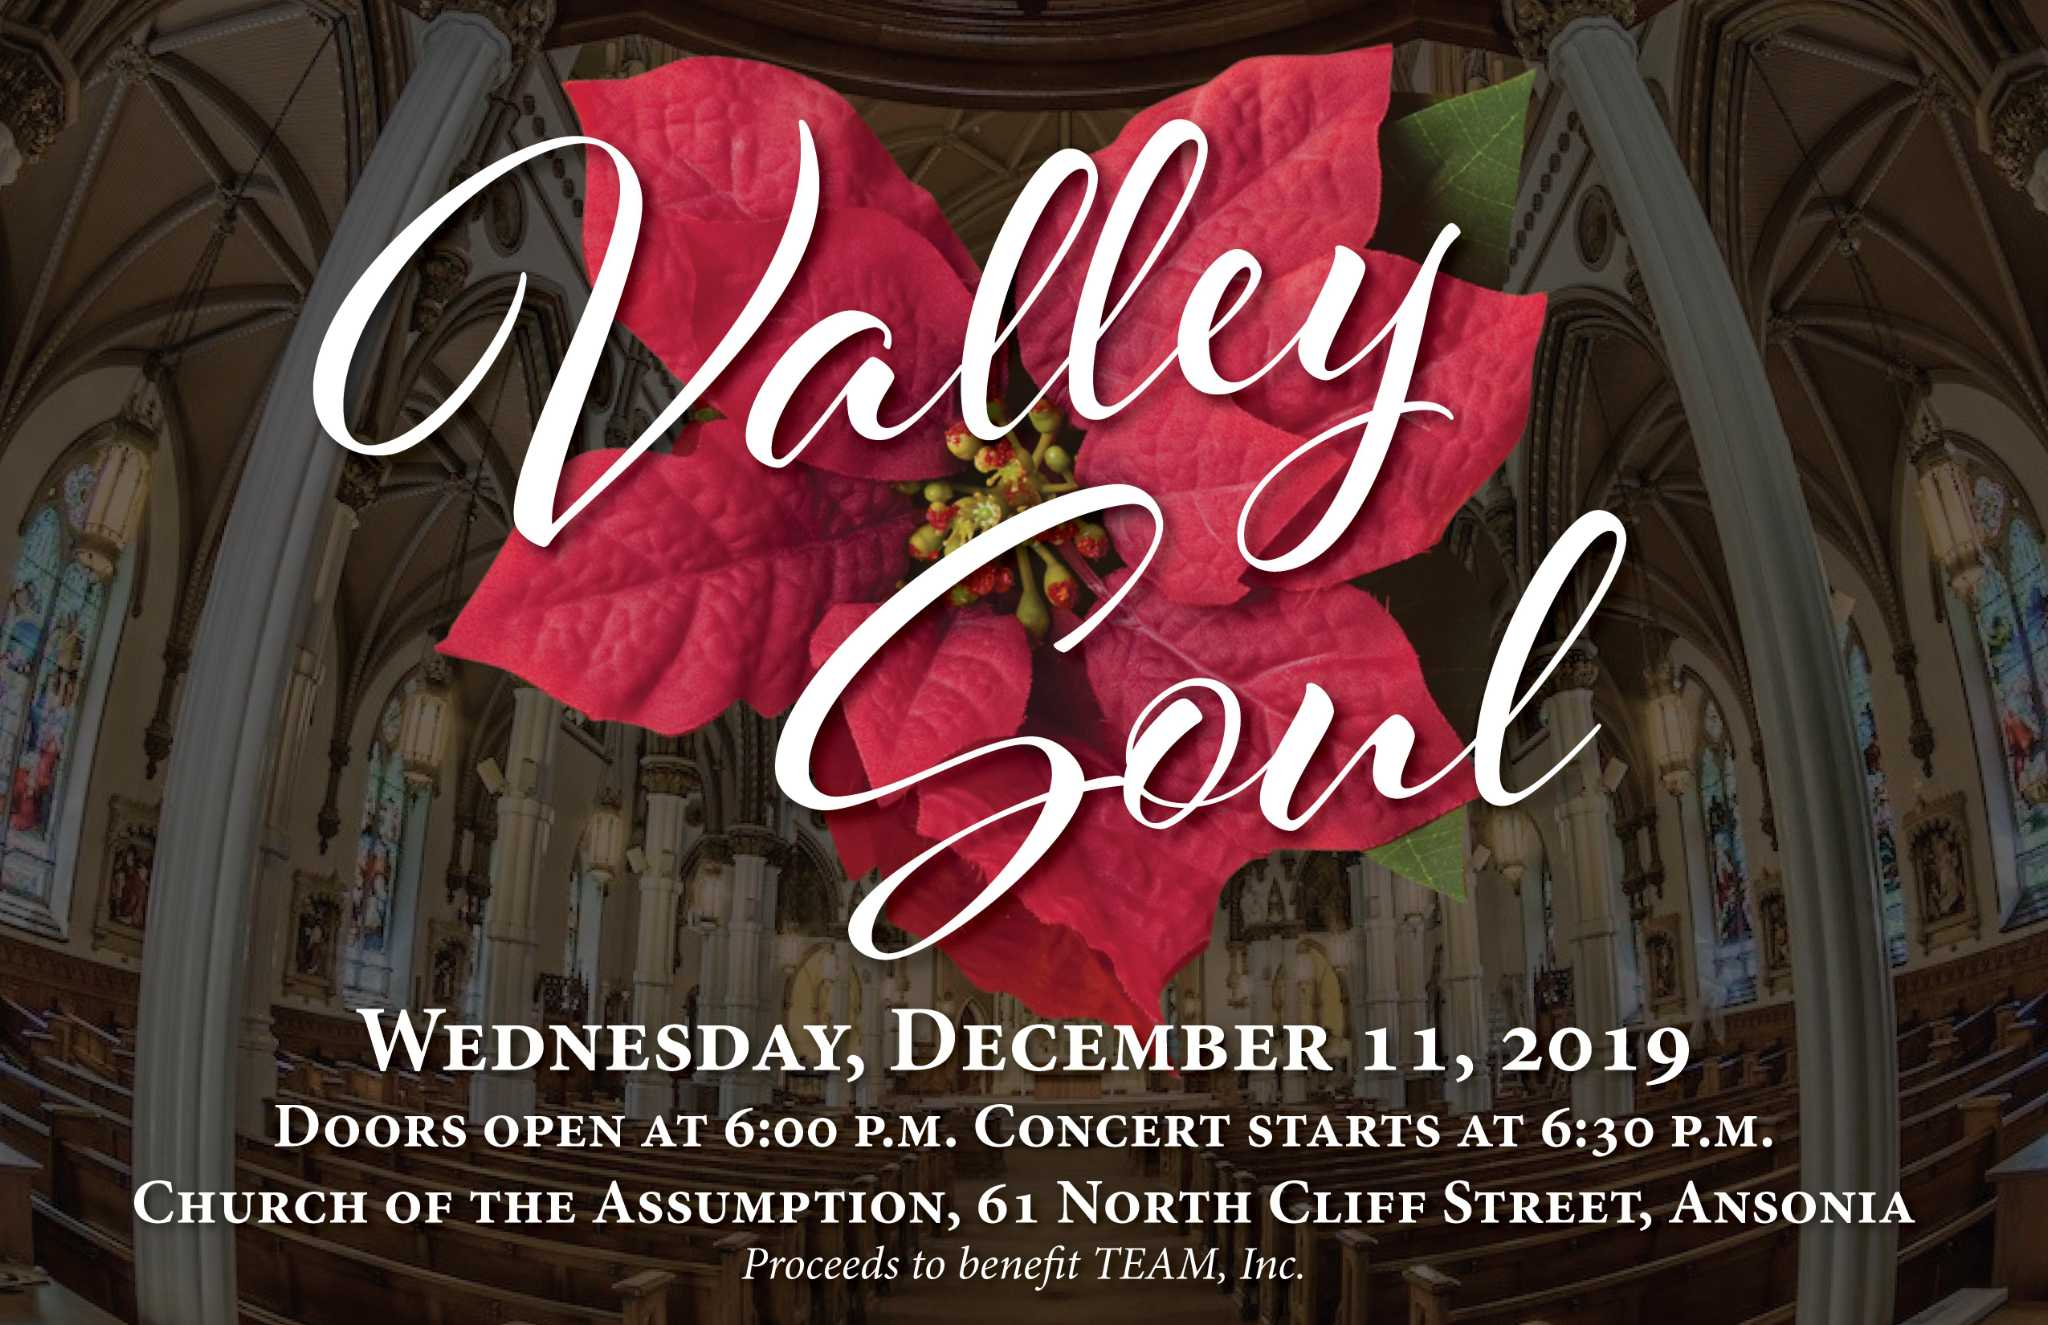 Griffin Health hosts free holiday concert featuring Valley Soul - mySanAntonio.com